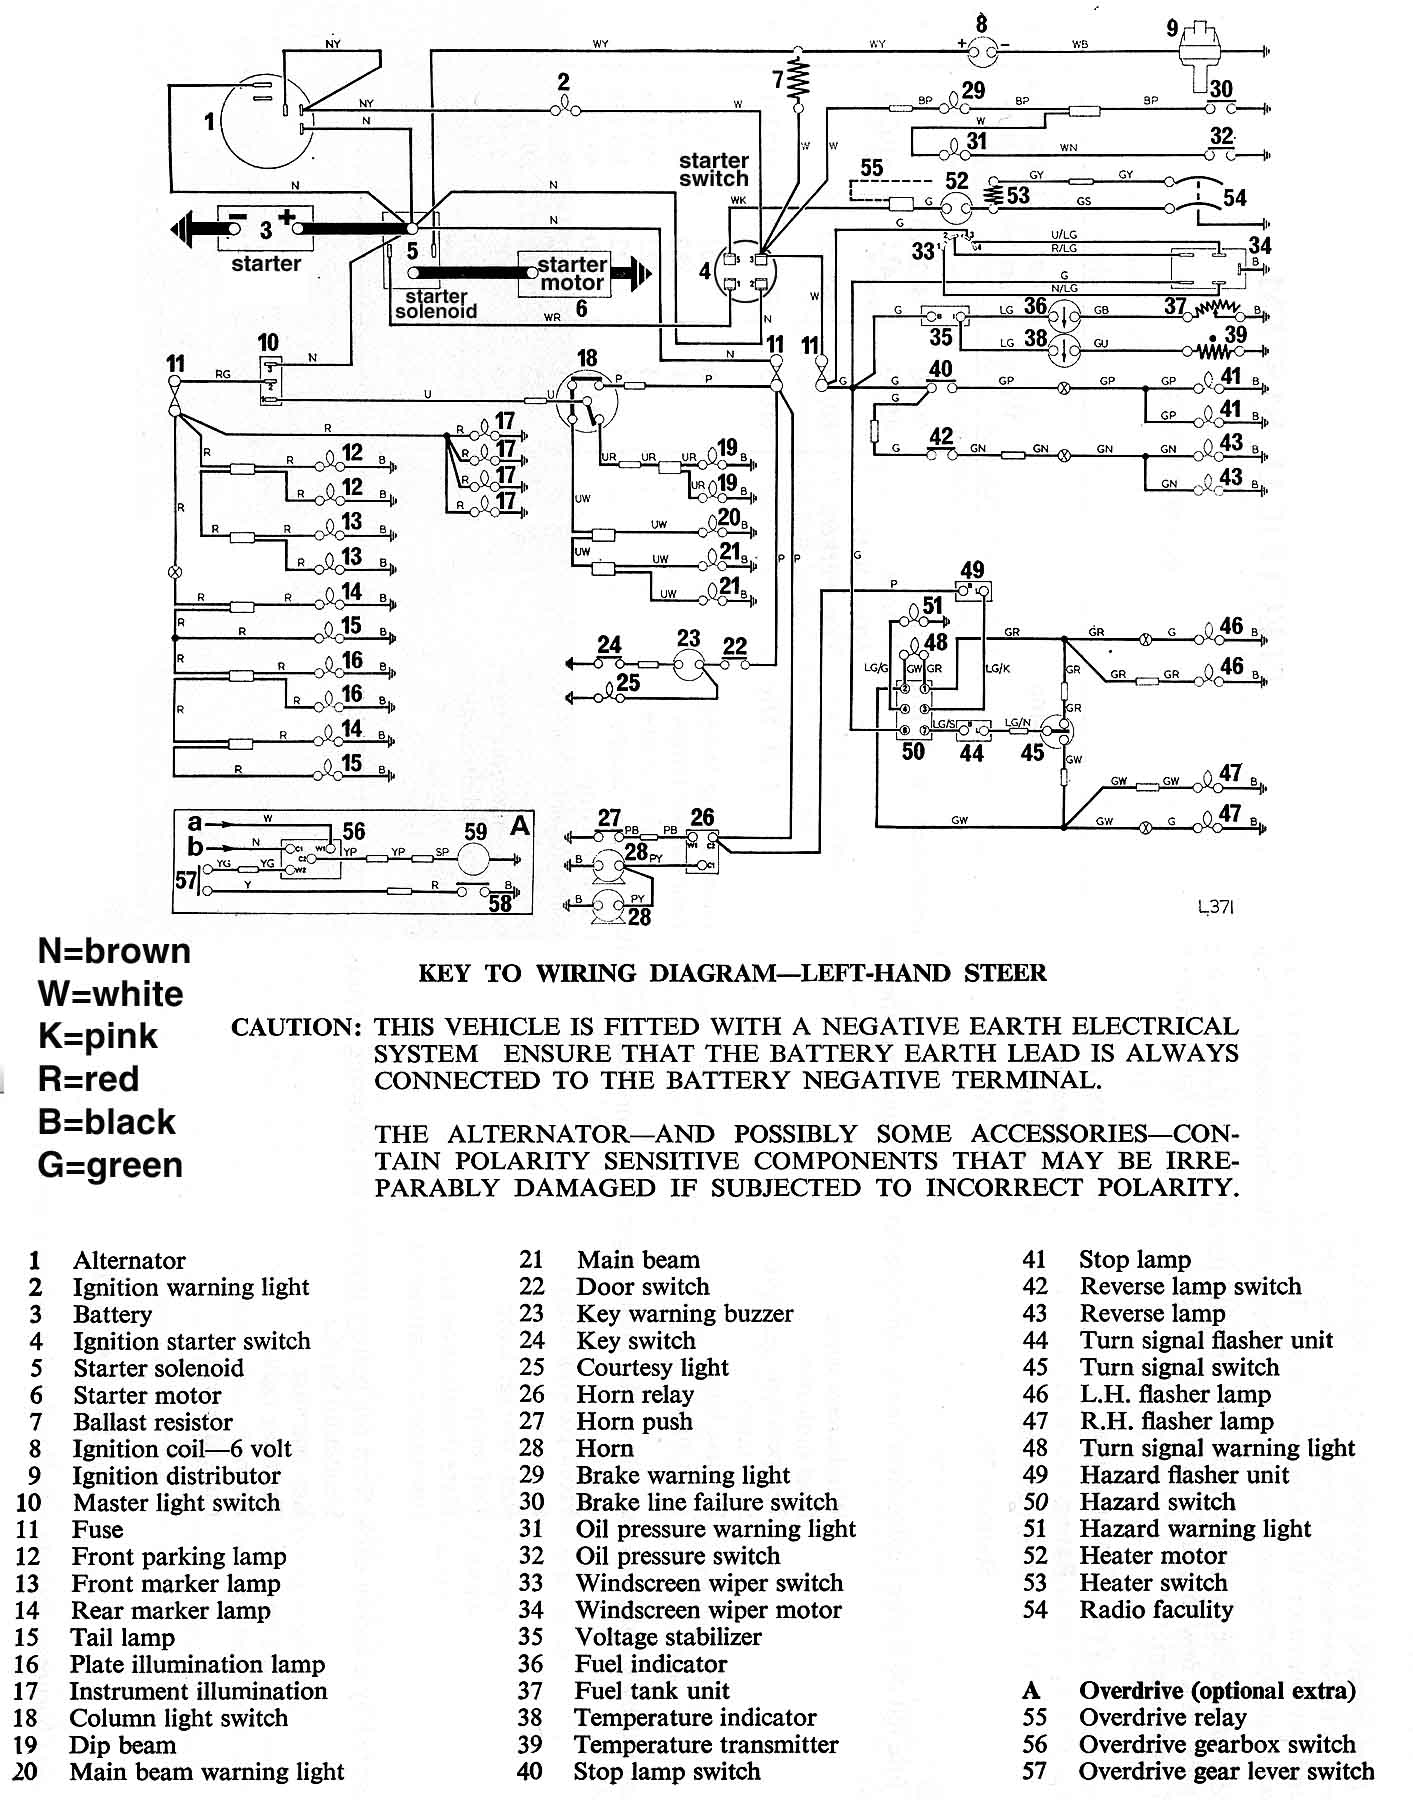 MKIVwire 1974 spitfire 1500 wire diagram spitfire & gt6 forum triumph triumph spitfire 1500 wiring diagram at webbmarketing.co